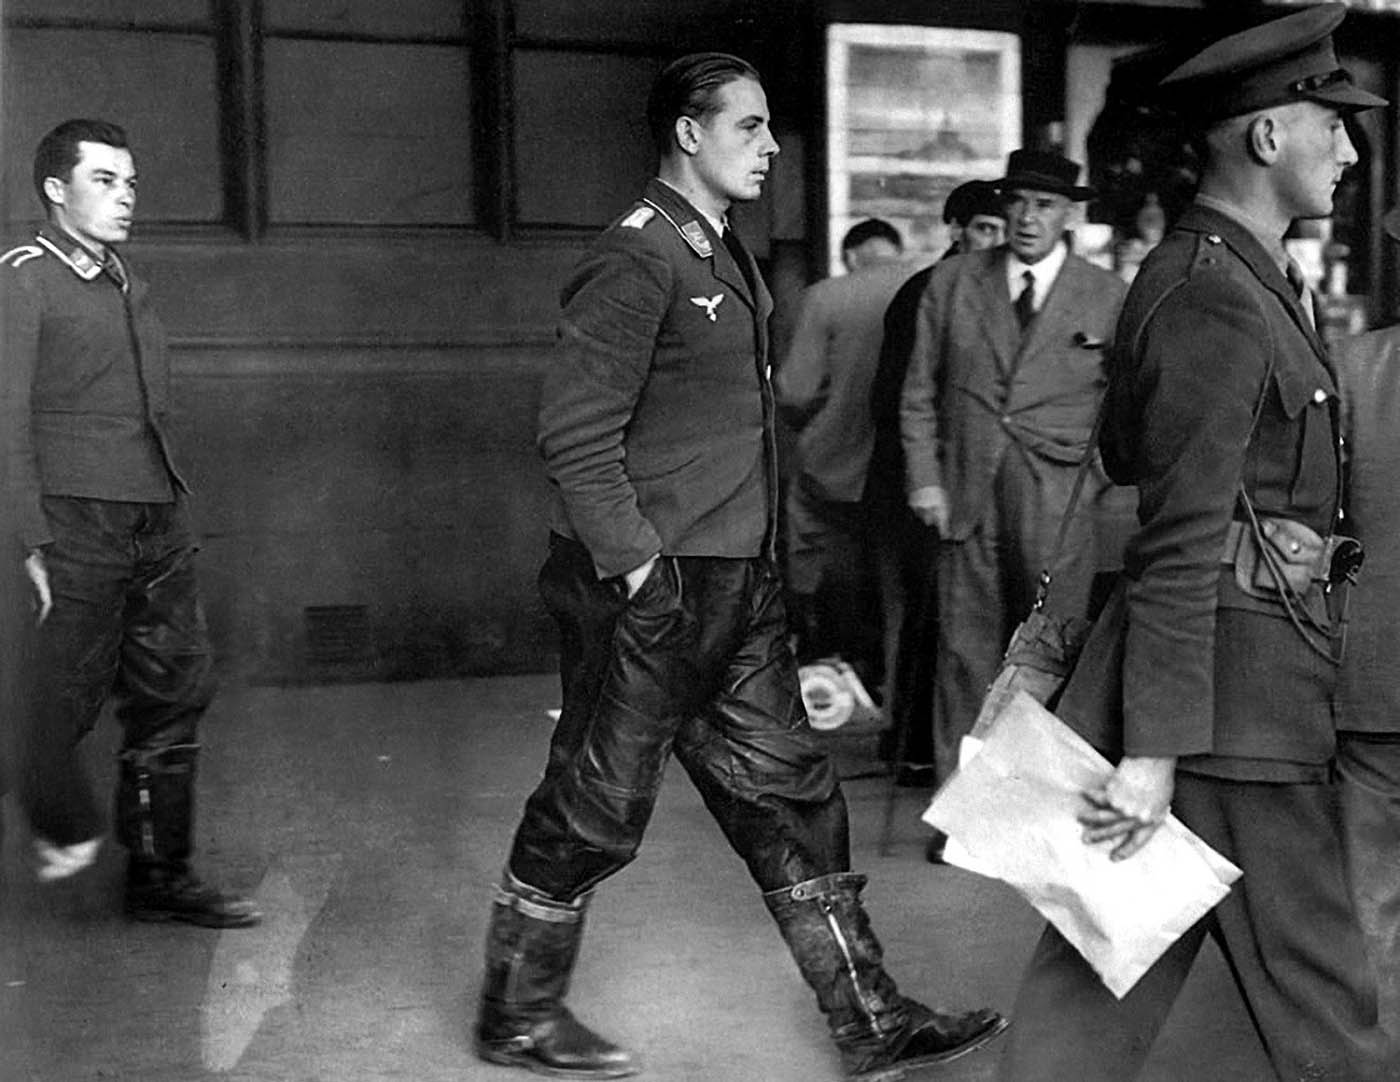 Two captured Luftwaffe bomber pilots walking among London citizens, September, 1940